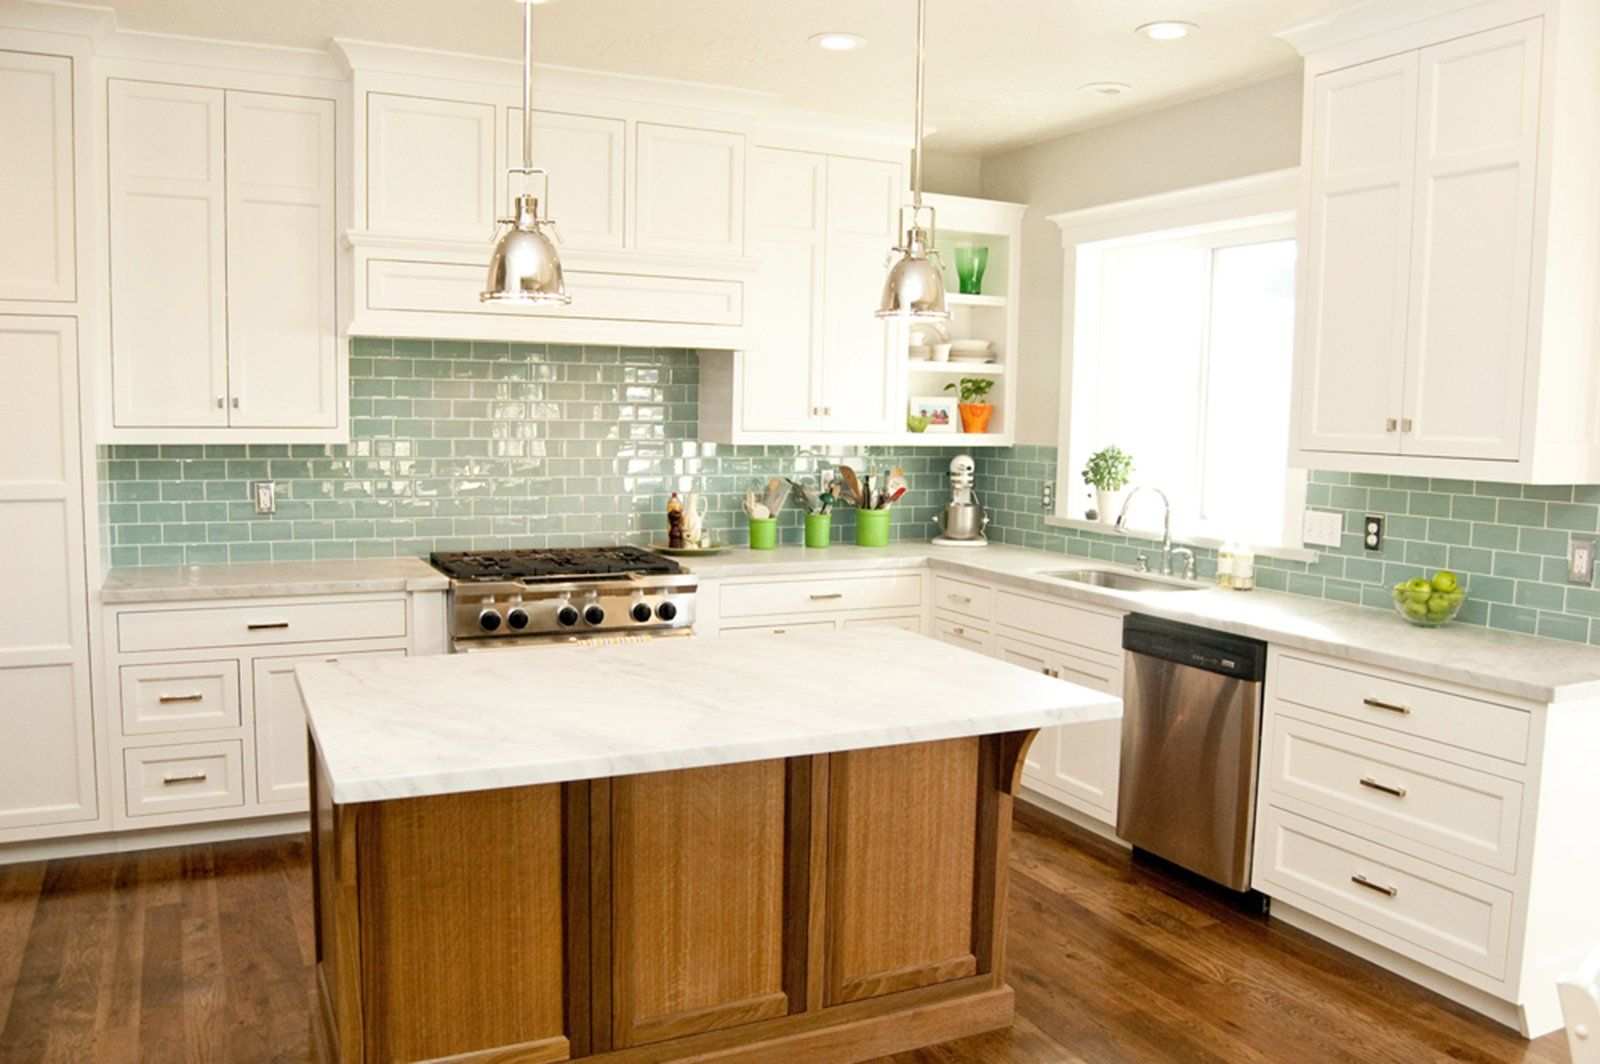 Subway tile green glass kitchen backsplash white cabinets charming